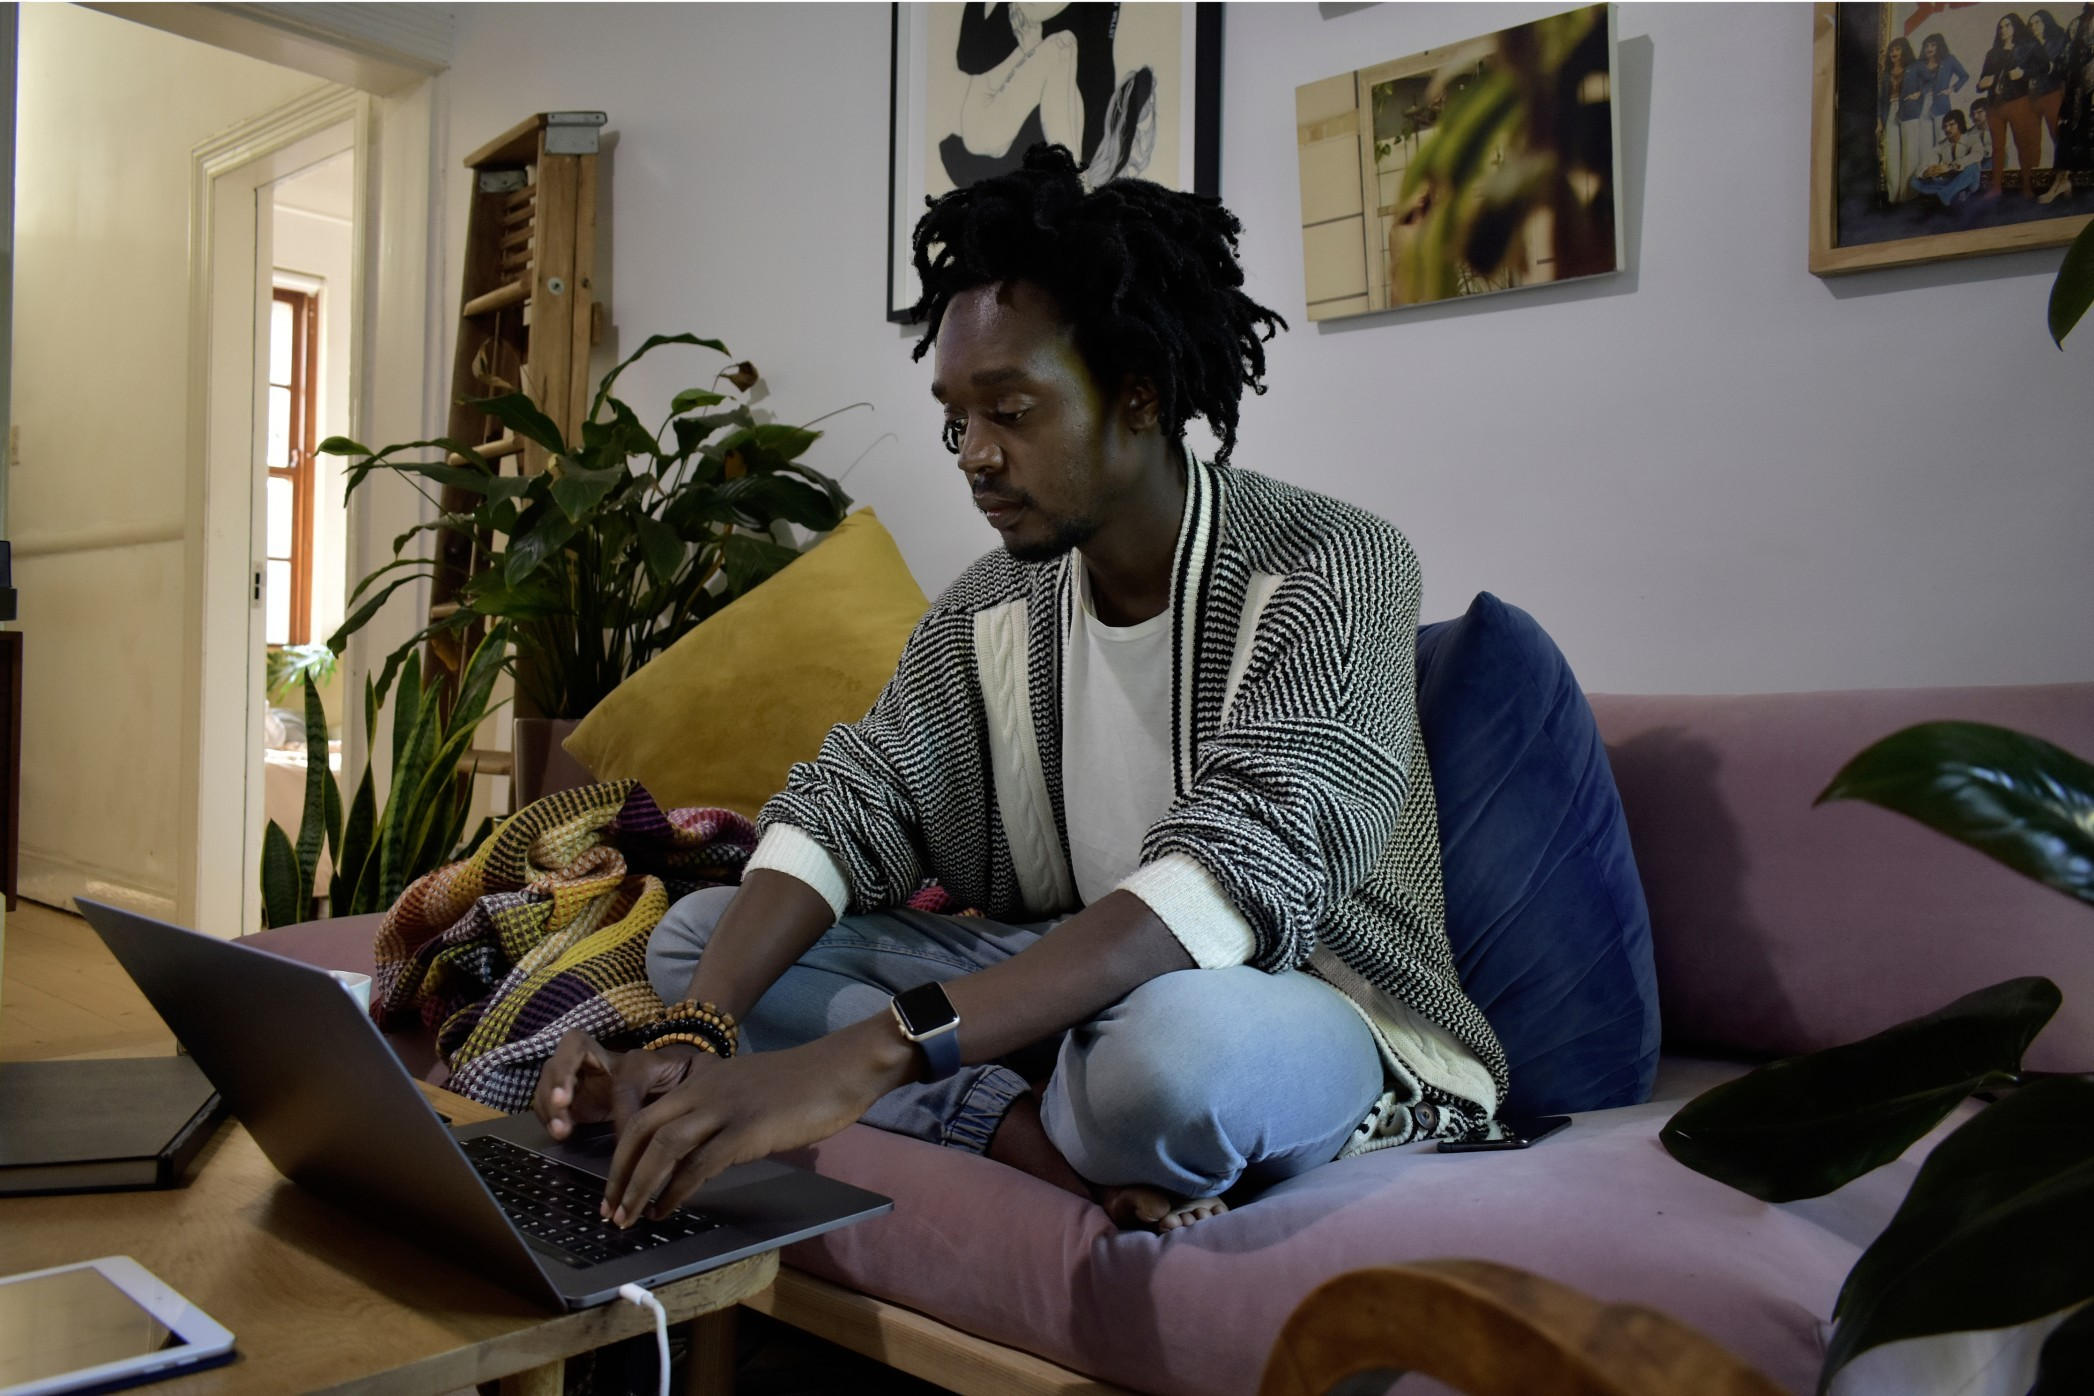 Black millennial with natural hair sitting on a couch and working from home t20 g LNL Pz